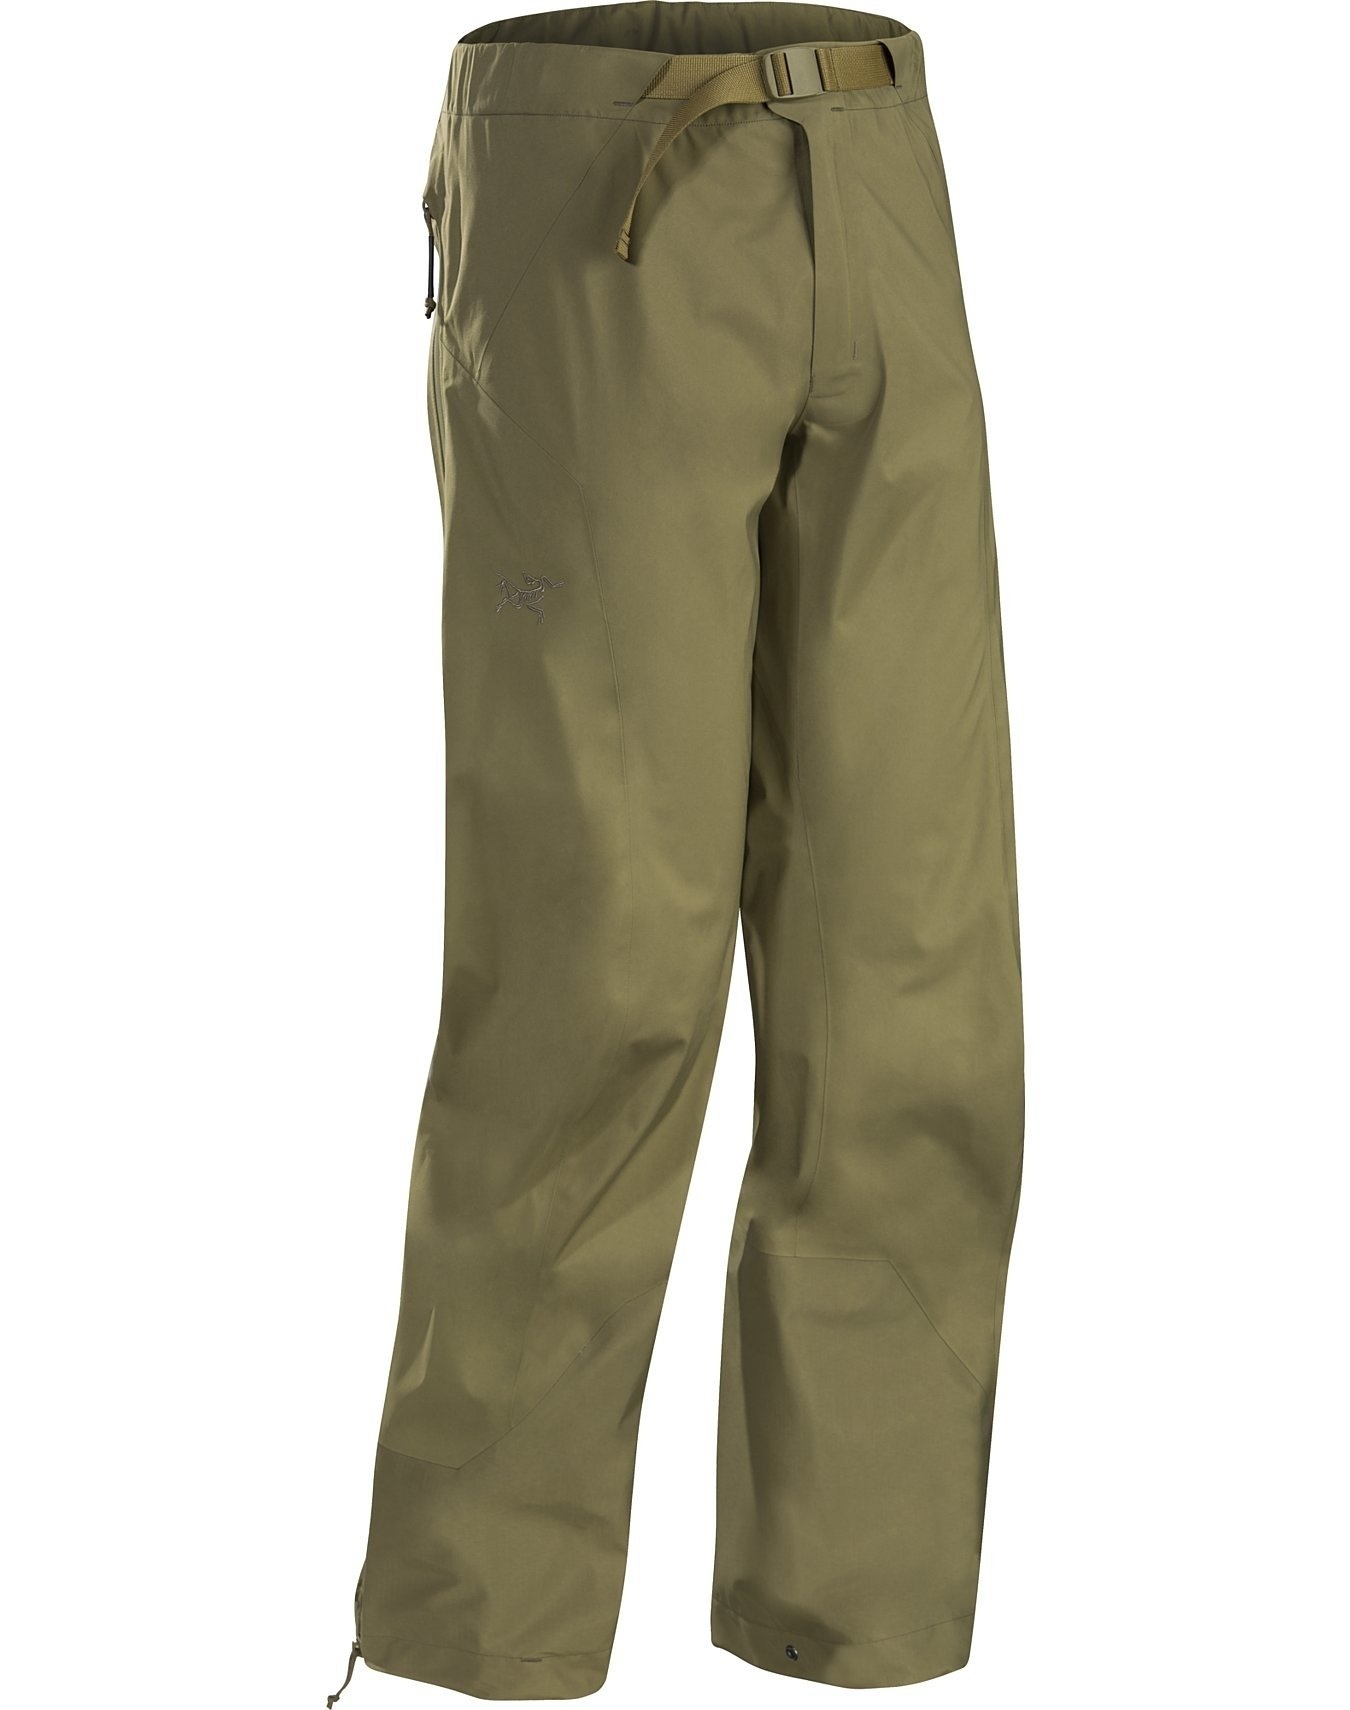 Arc'teryx LEAF Arc'teryx LEAF Alpha LT Pant LEAF Men's (Revised) (OS)*